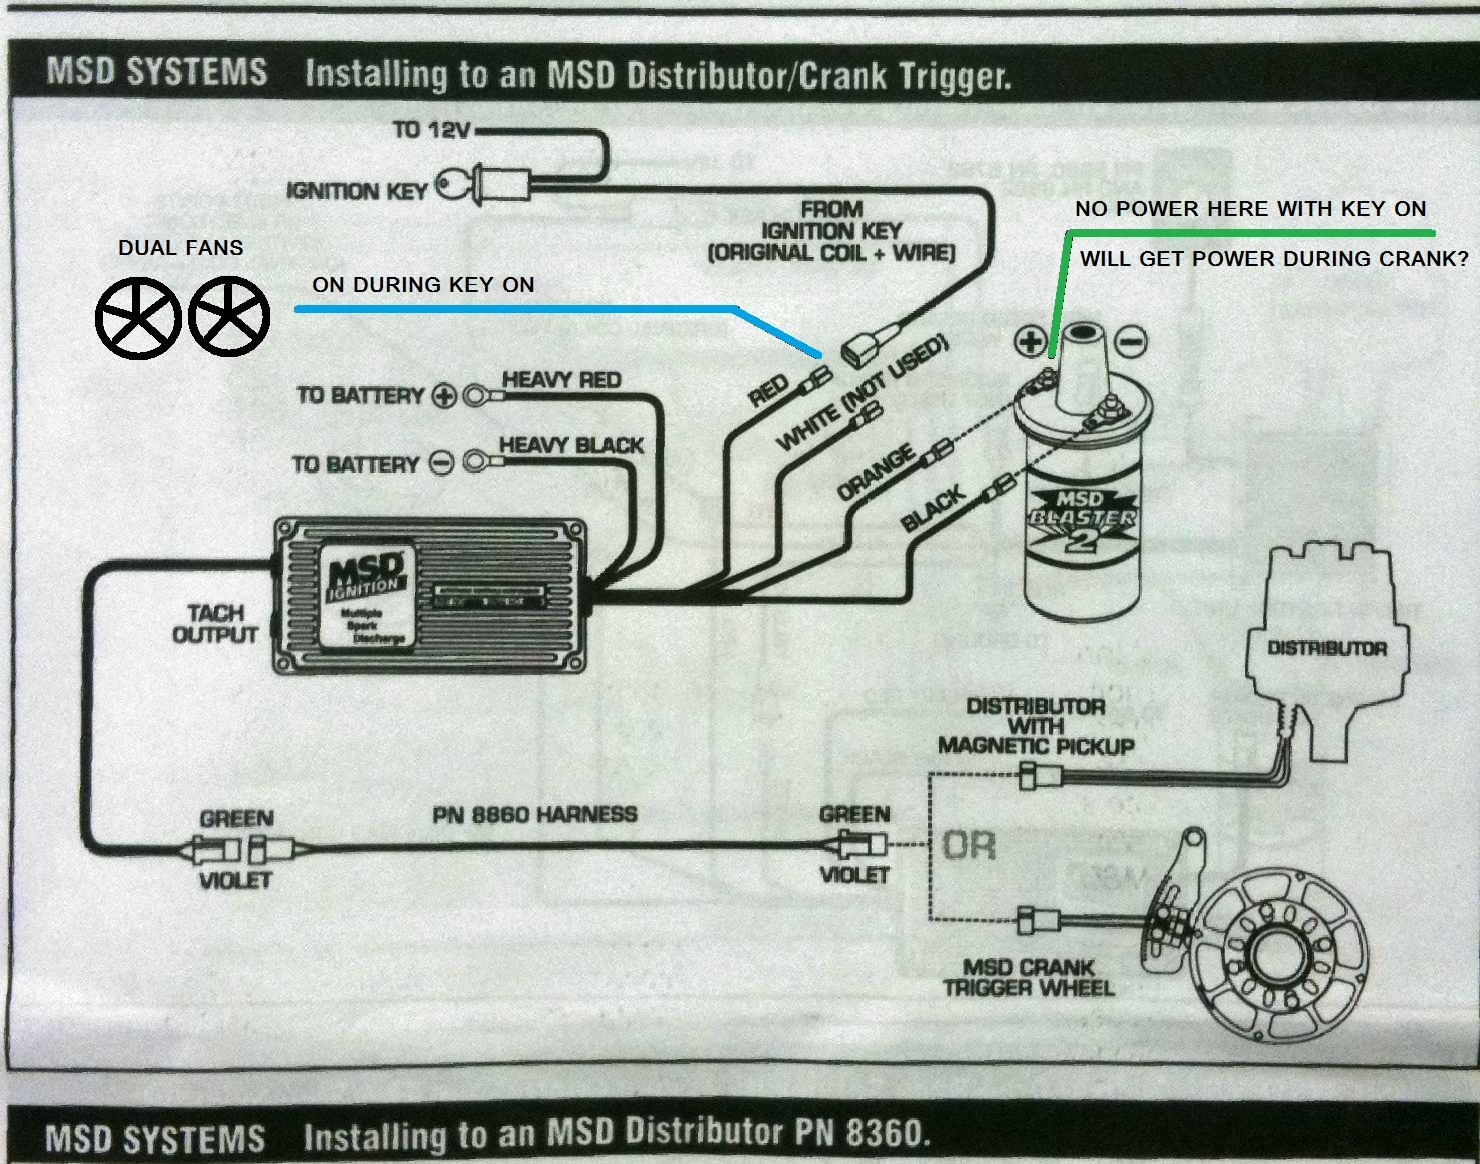 Msd Hvc Wiring Diagram 22 Images Diagrams Chev 350 114688d1288762436 Coil Wire Always Key Only 1955 Chevy 6al Box With Rev Limitor